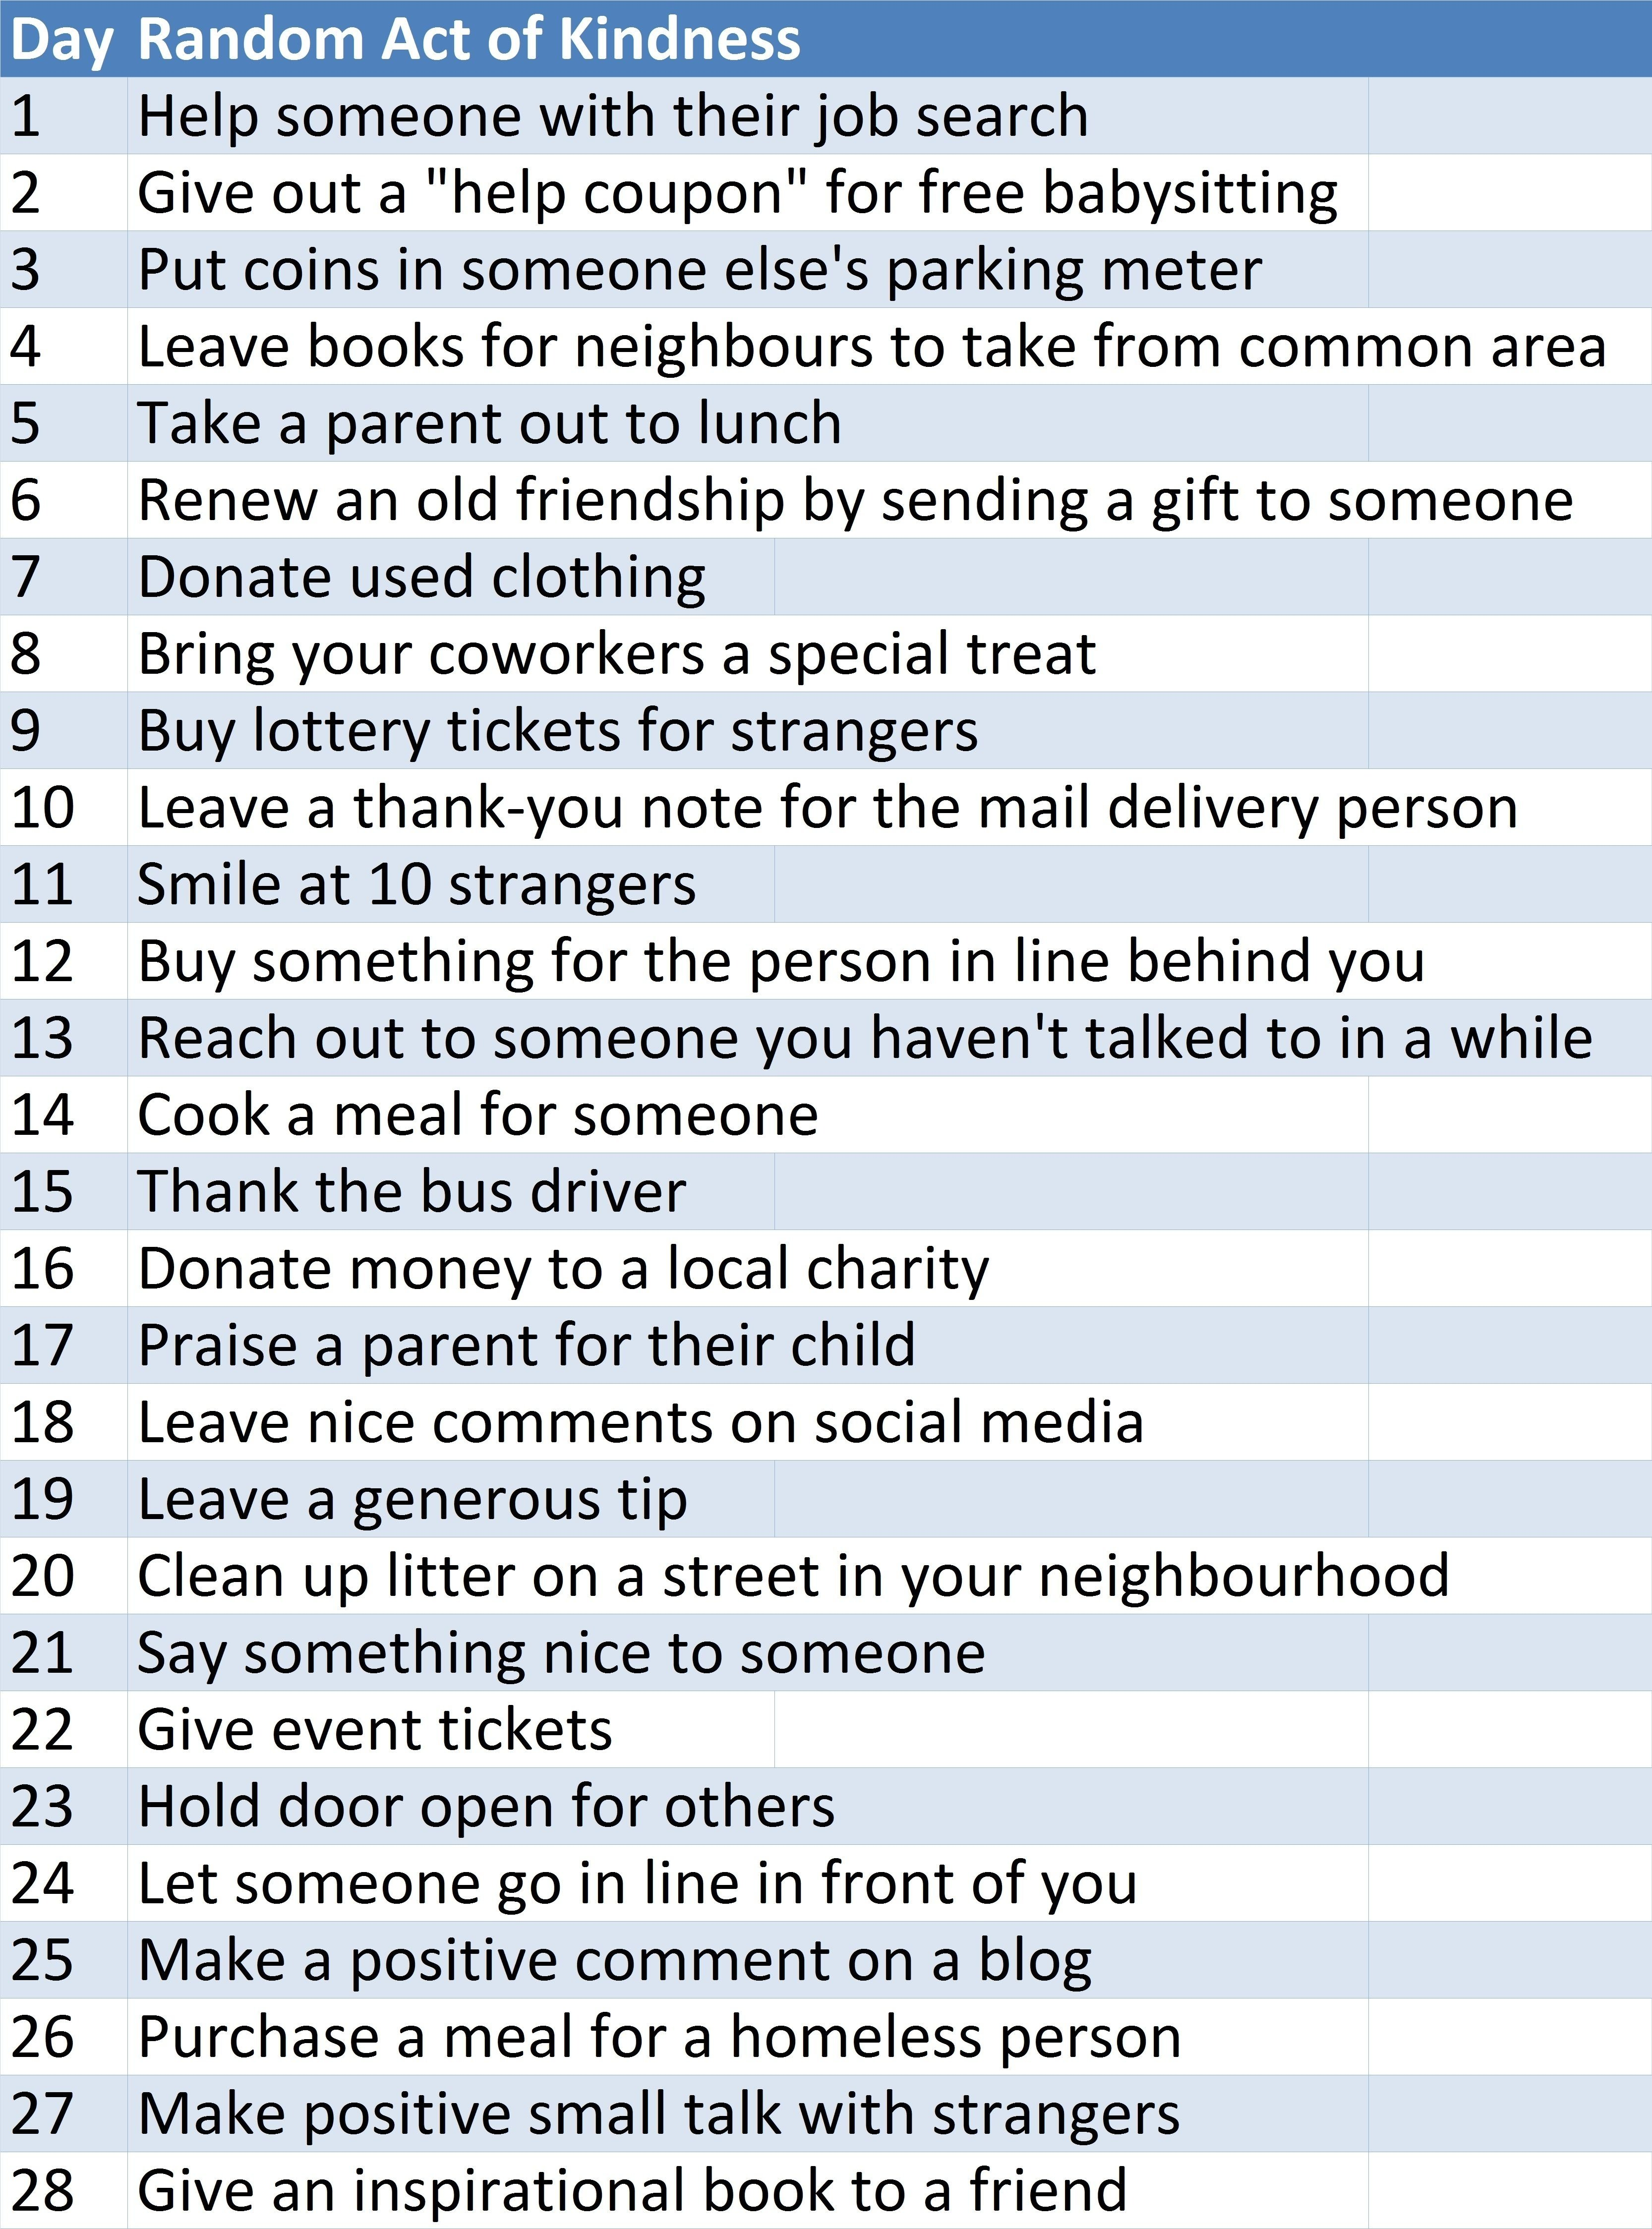 10 Best Ideas For Random Acts Of Kindness random act of kindness ideas my church is focusing on kindness to